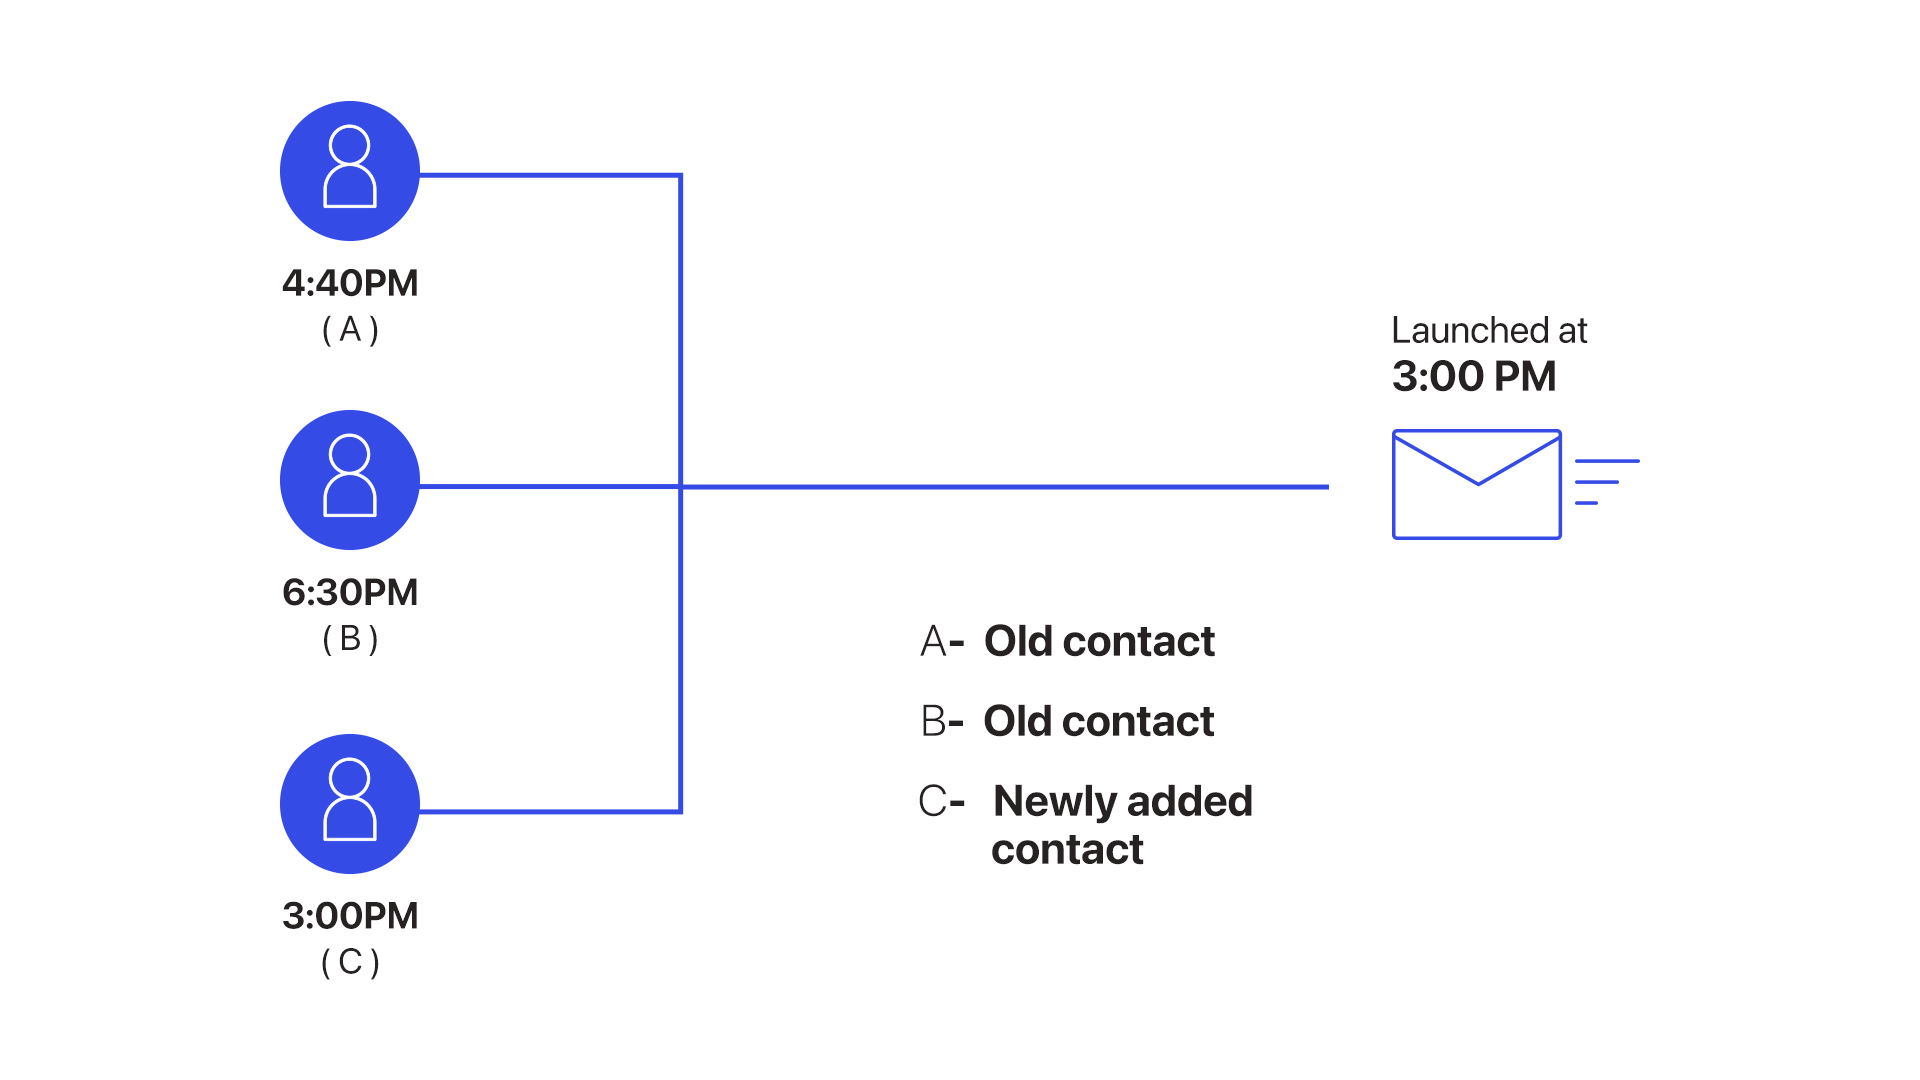 Optimal-open-time scheduling of emails